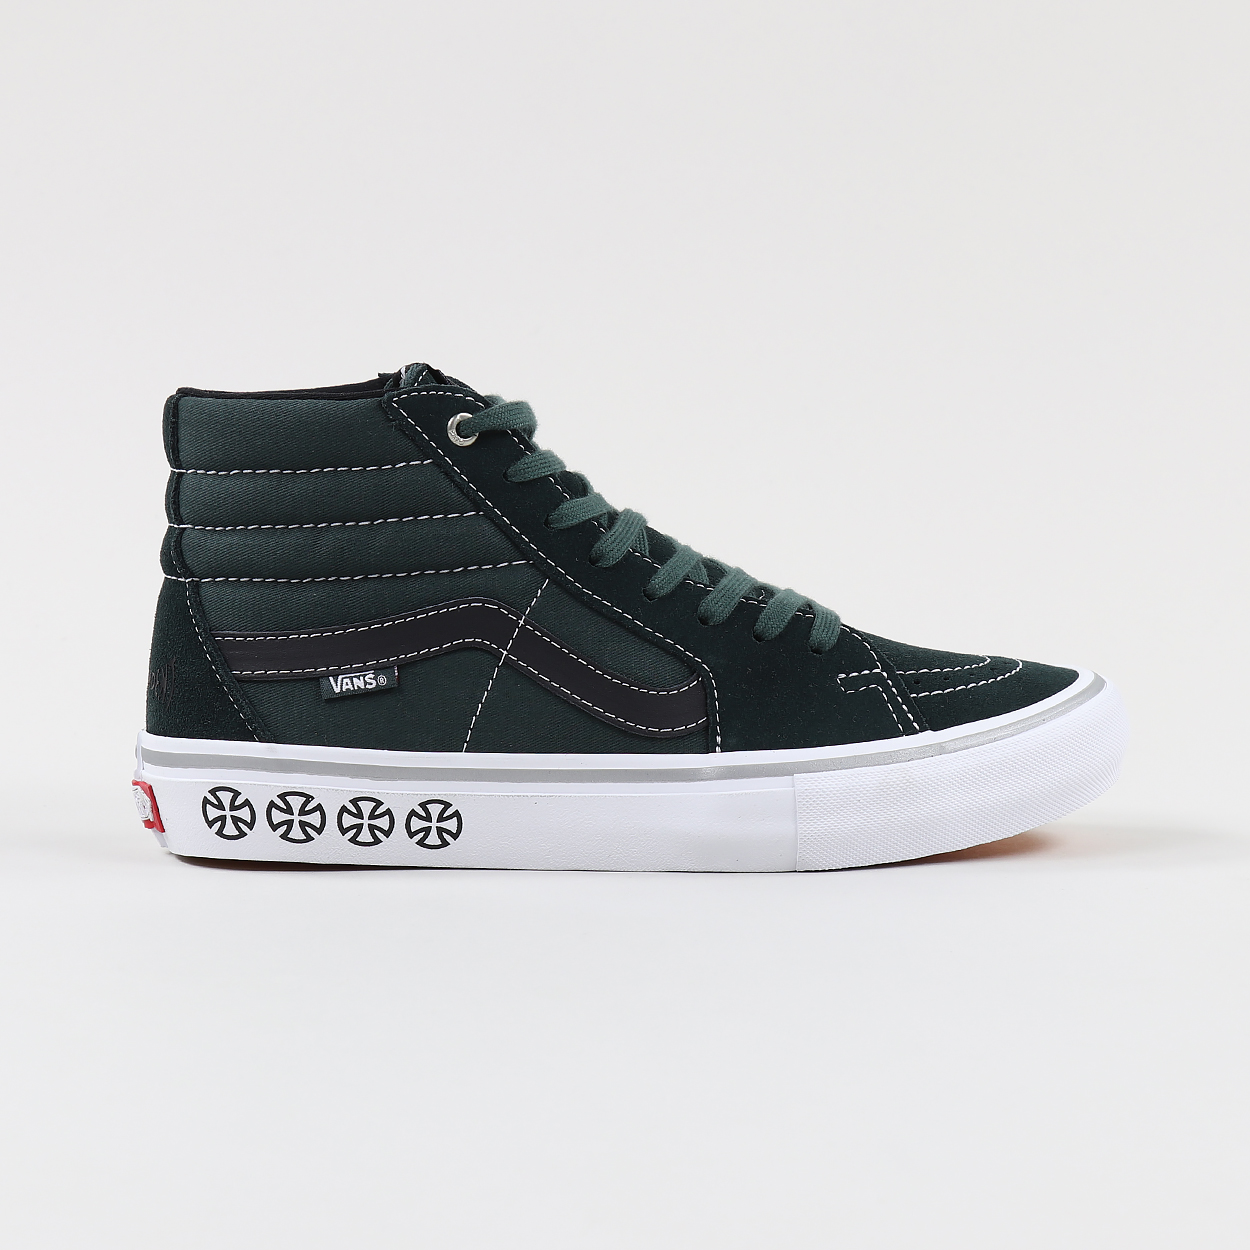 bb9a40ae1e081b Vans x Independent Mens Sk8 Hi Skate Pro Shoes Spruce Green £58.00